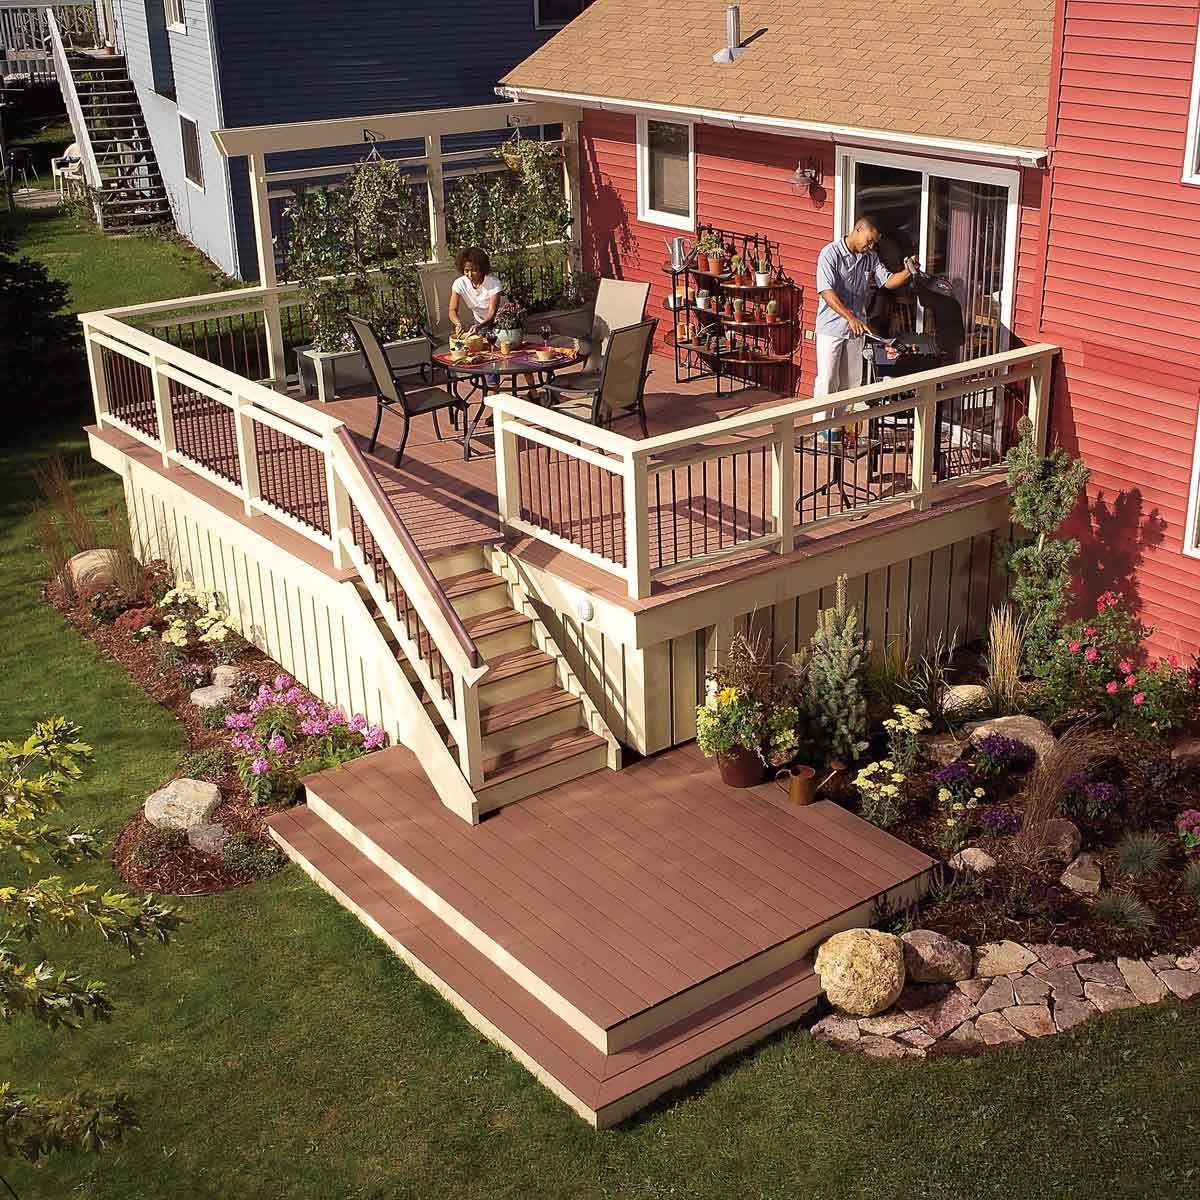 Upgraded deck with platform at end of the stairs